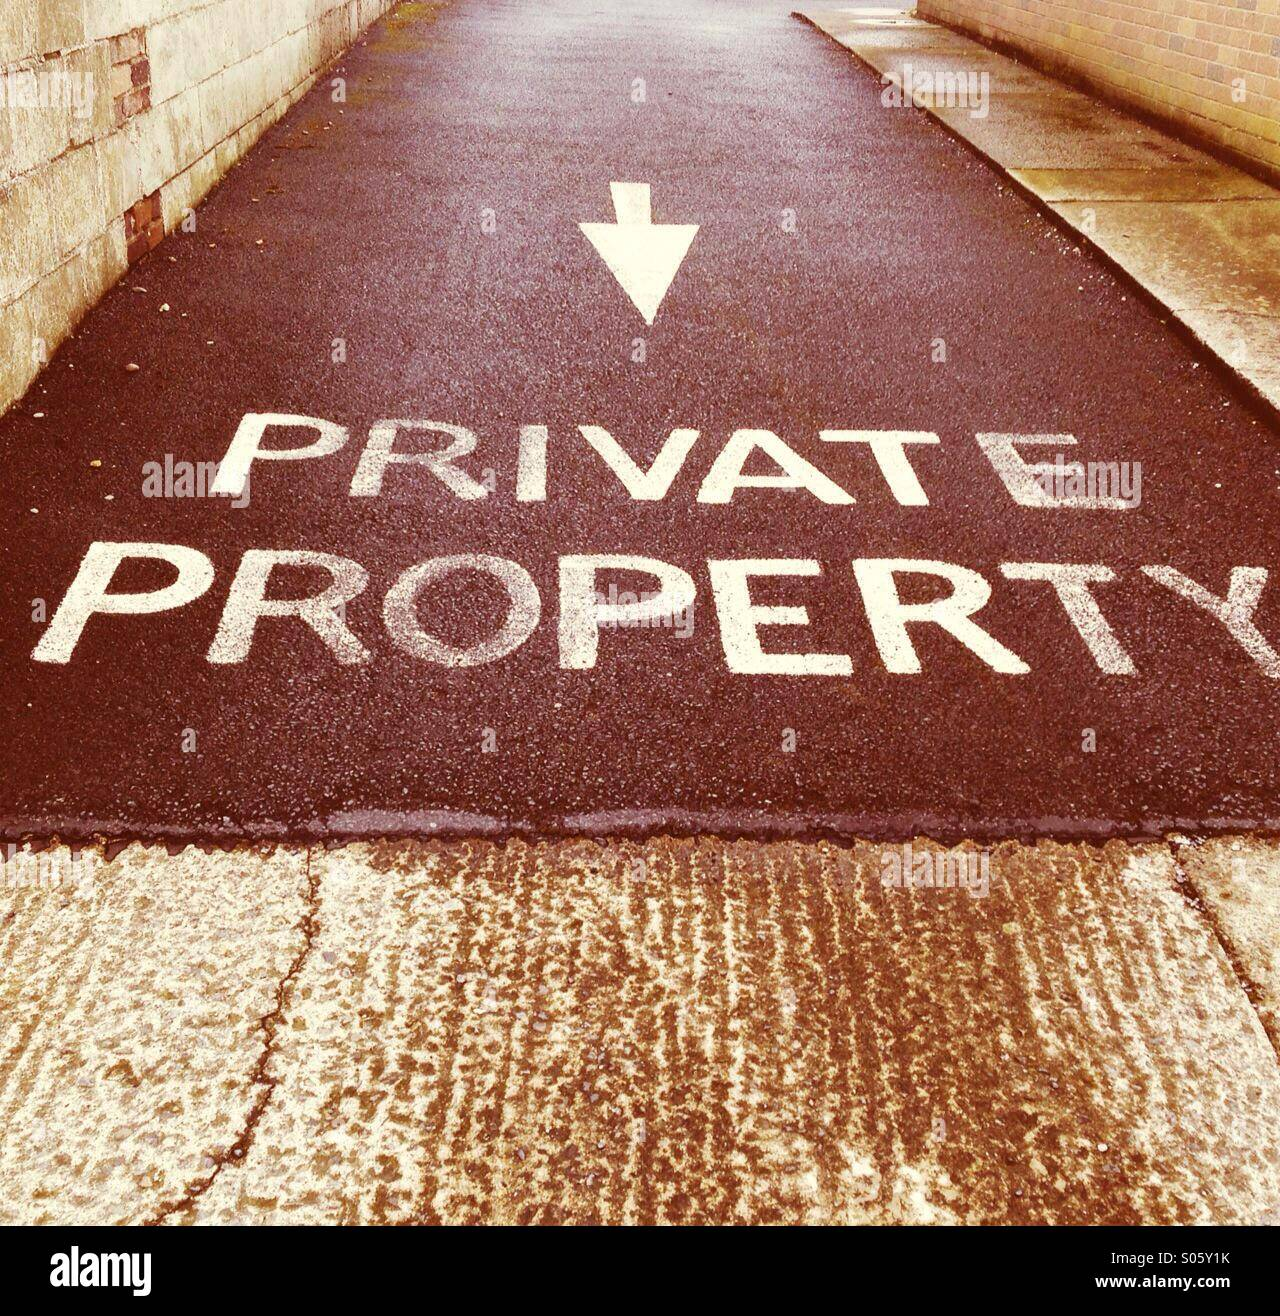 'Private Property' notice written on a driveway - Stock Image